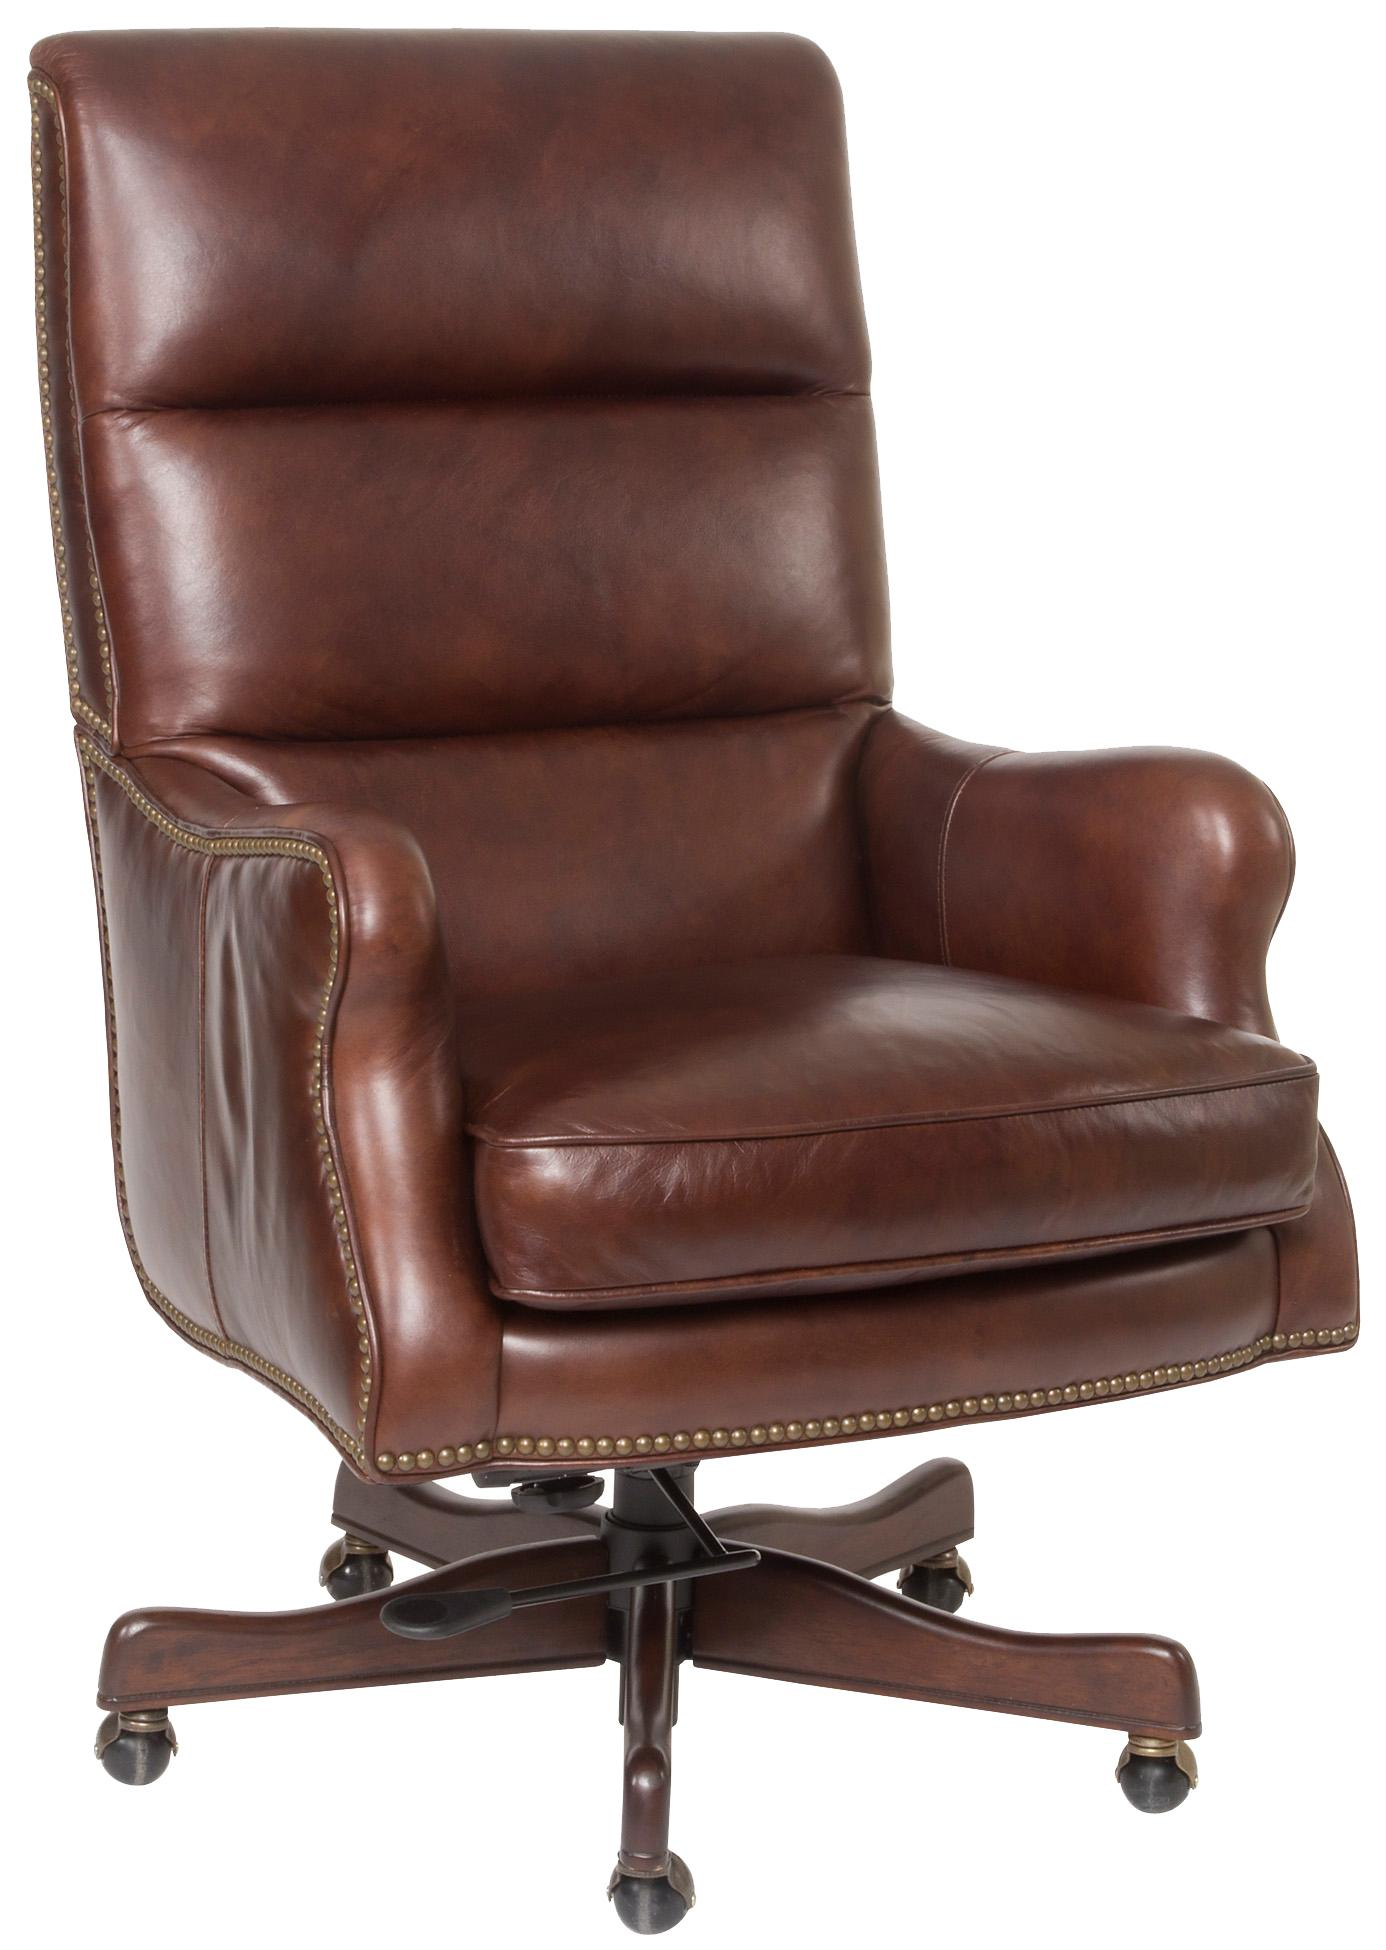 Executive Seating Classic Styled Leather Desk Chair by Hooker Furniture at Stoney Creek Furniture